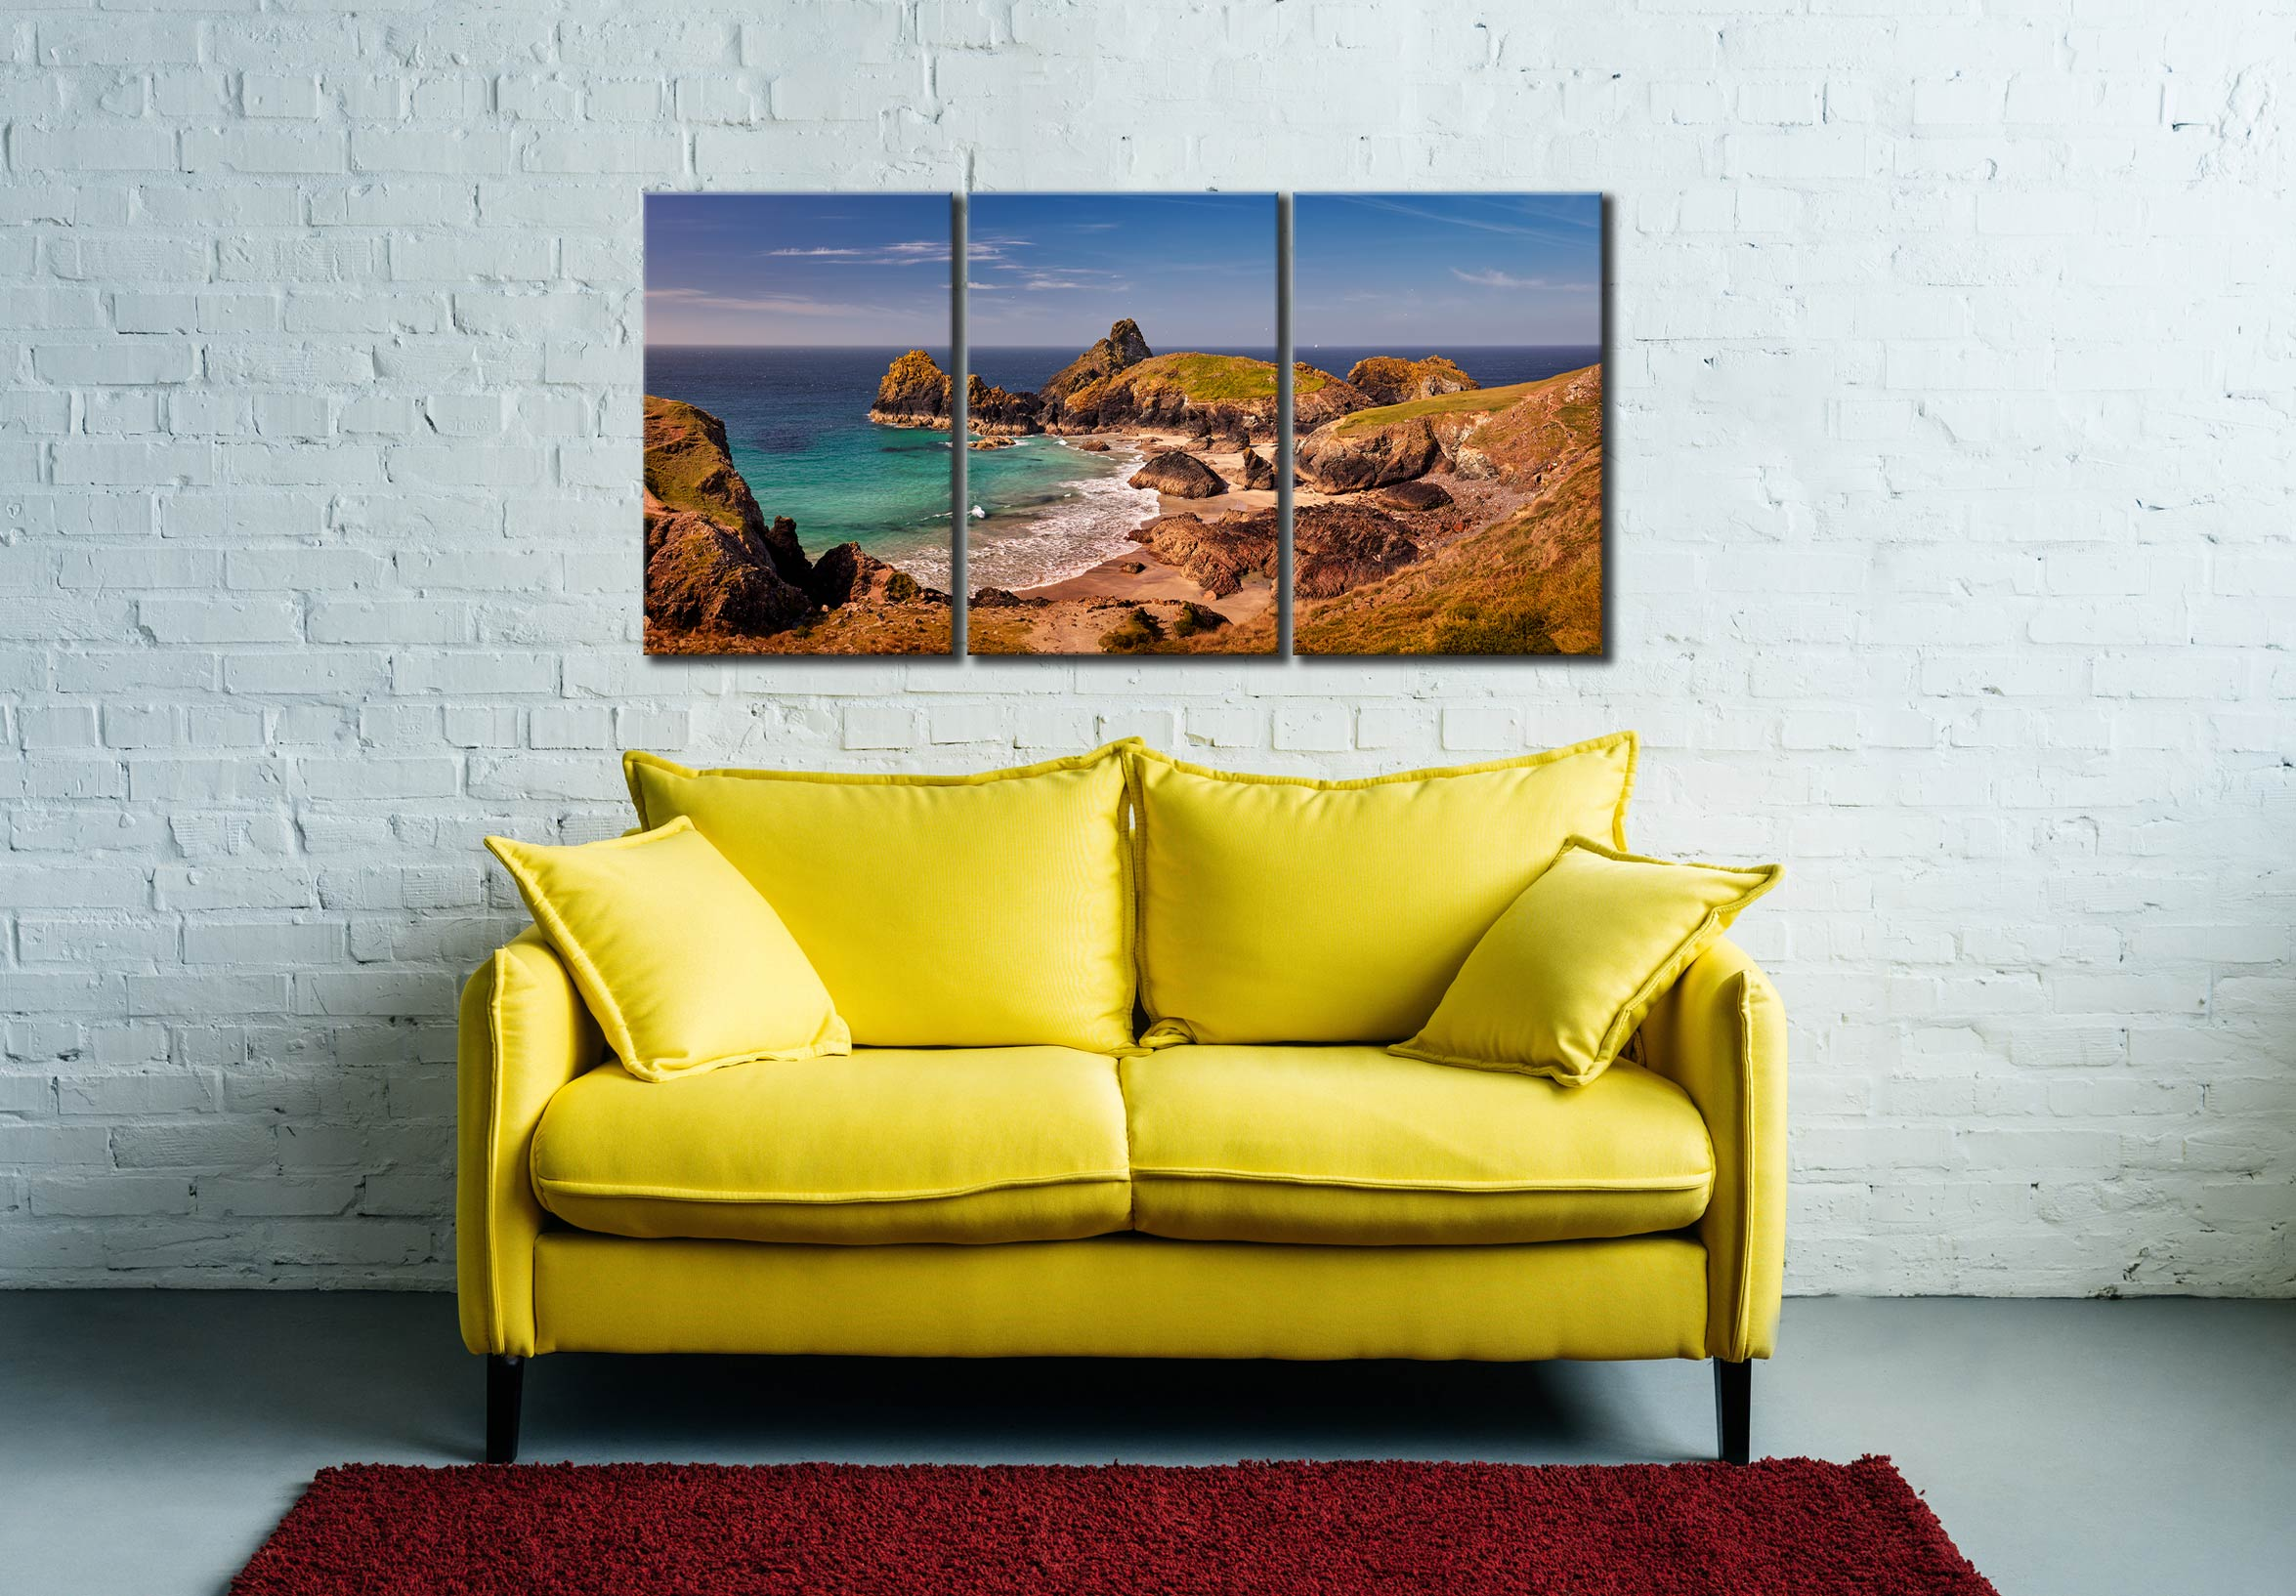 Kynance Cove Tropical Waters - 3 Panel Canvas on Wall